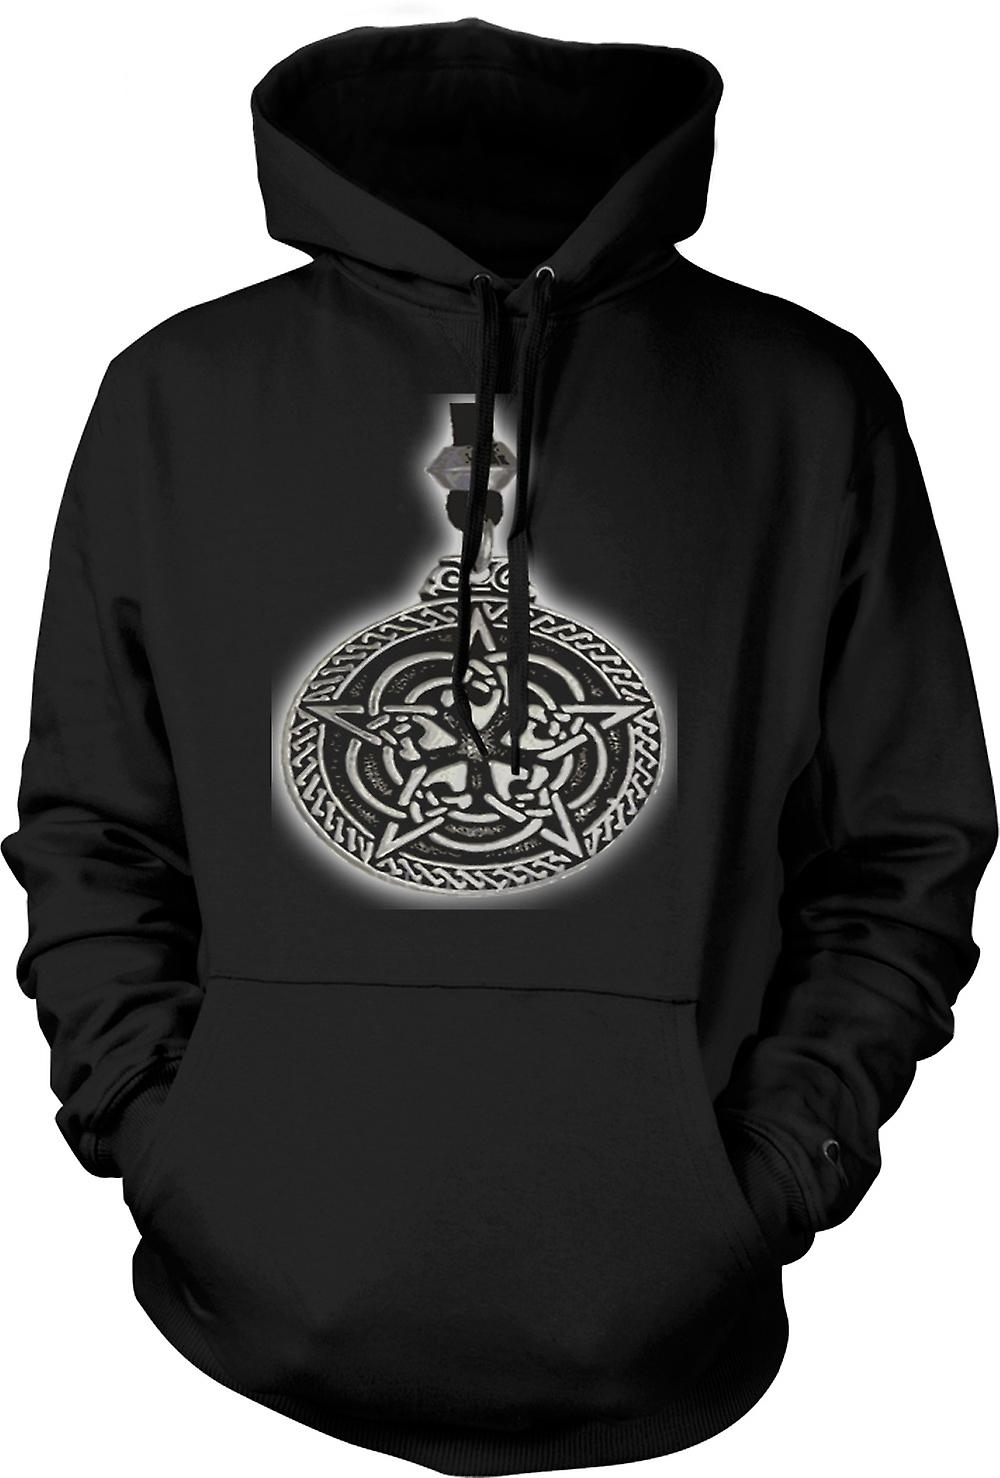 Mens Hoodie - médaillon païen - Art Tribal